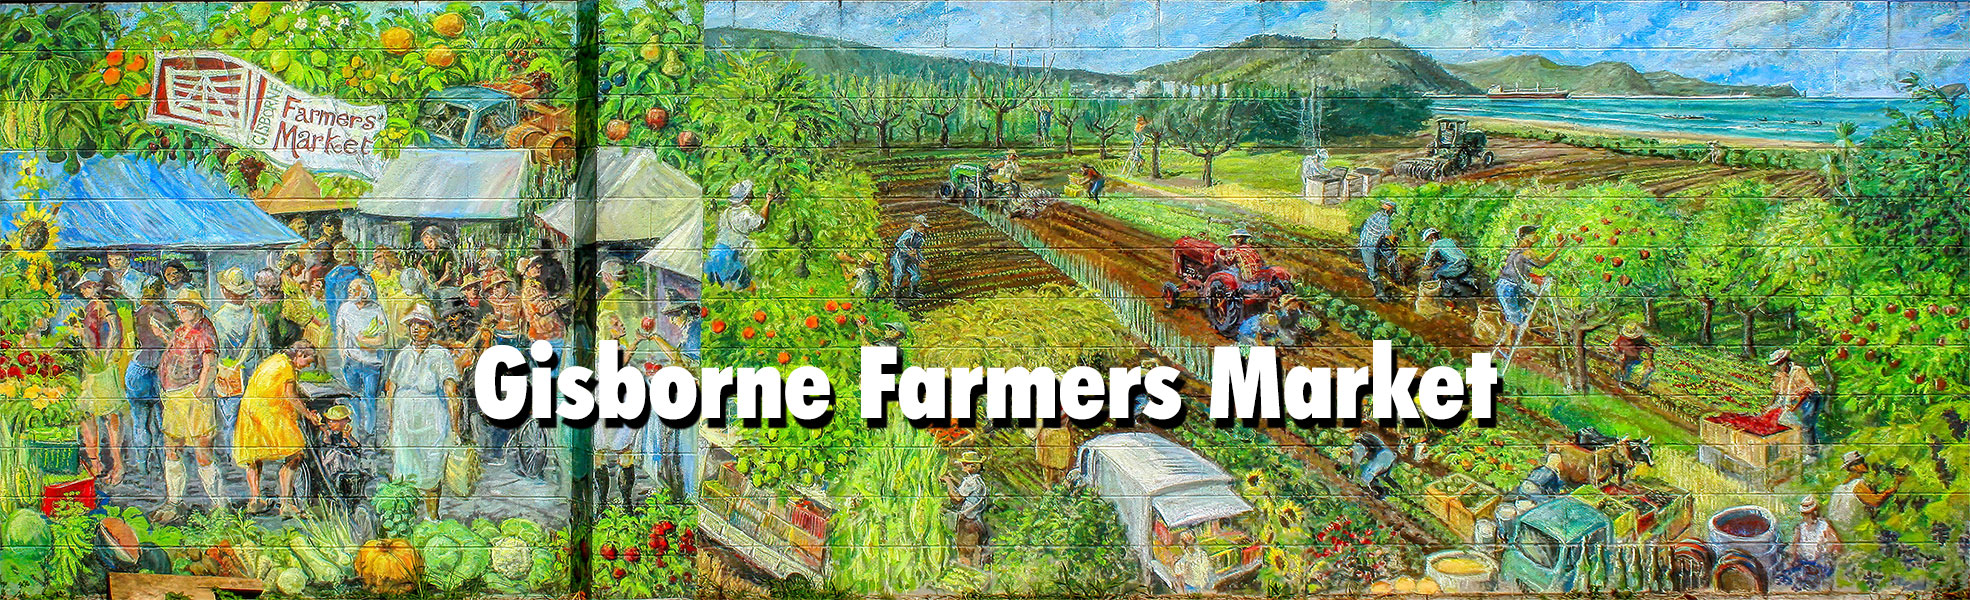 the Gisborne Farmers Market